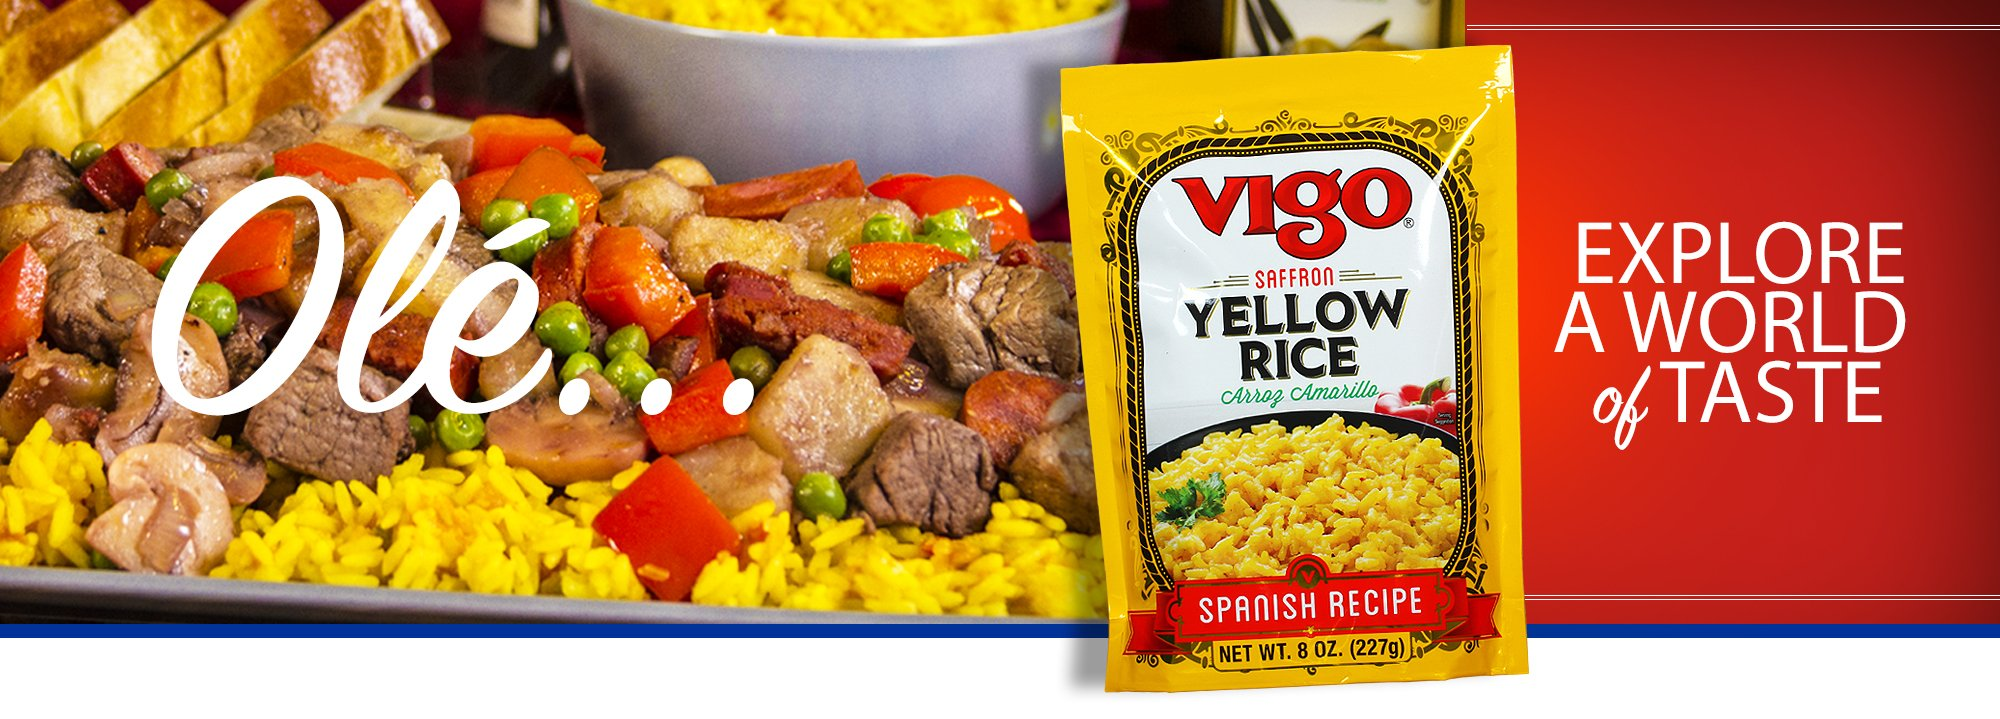 A world of taste - Vigo Yellow Rice